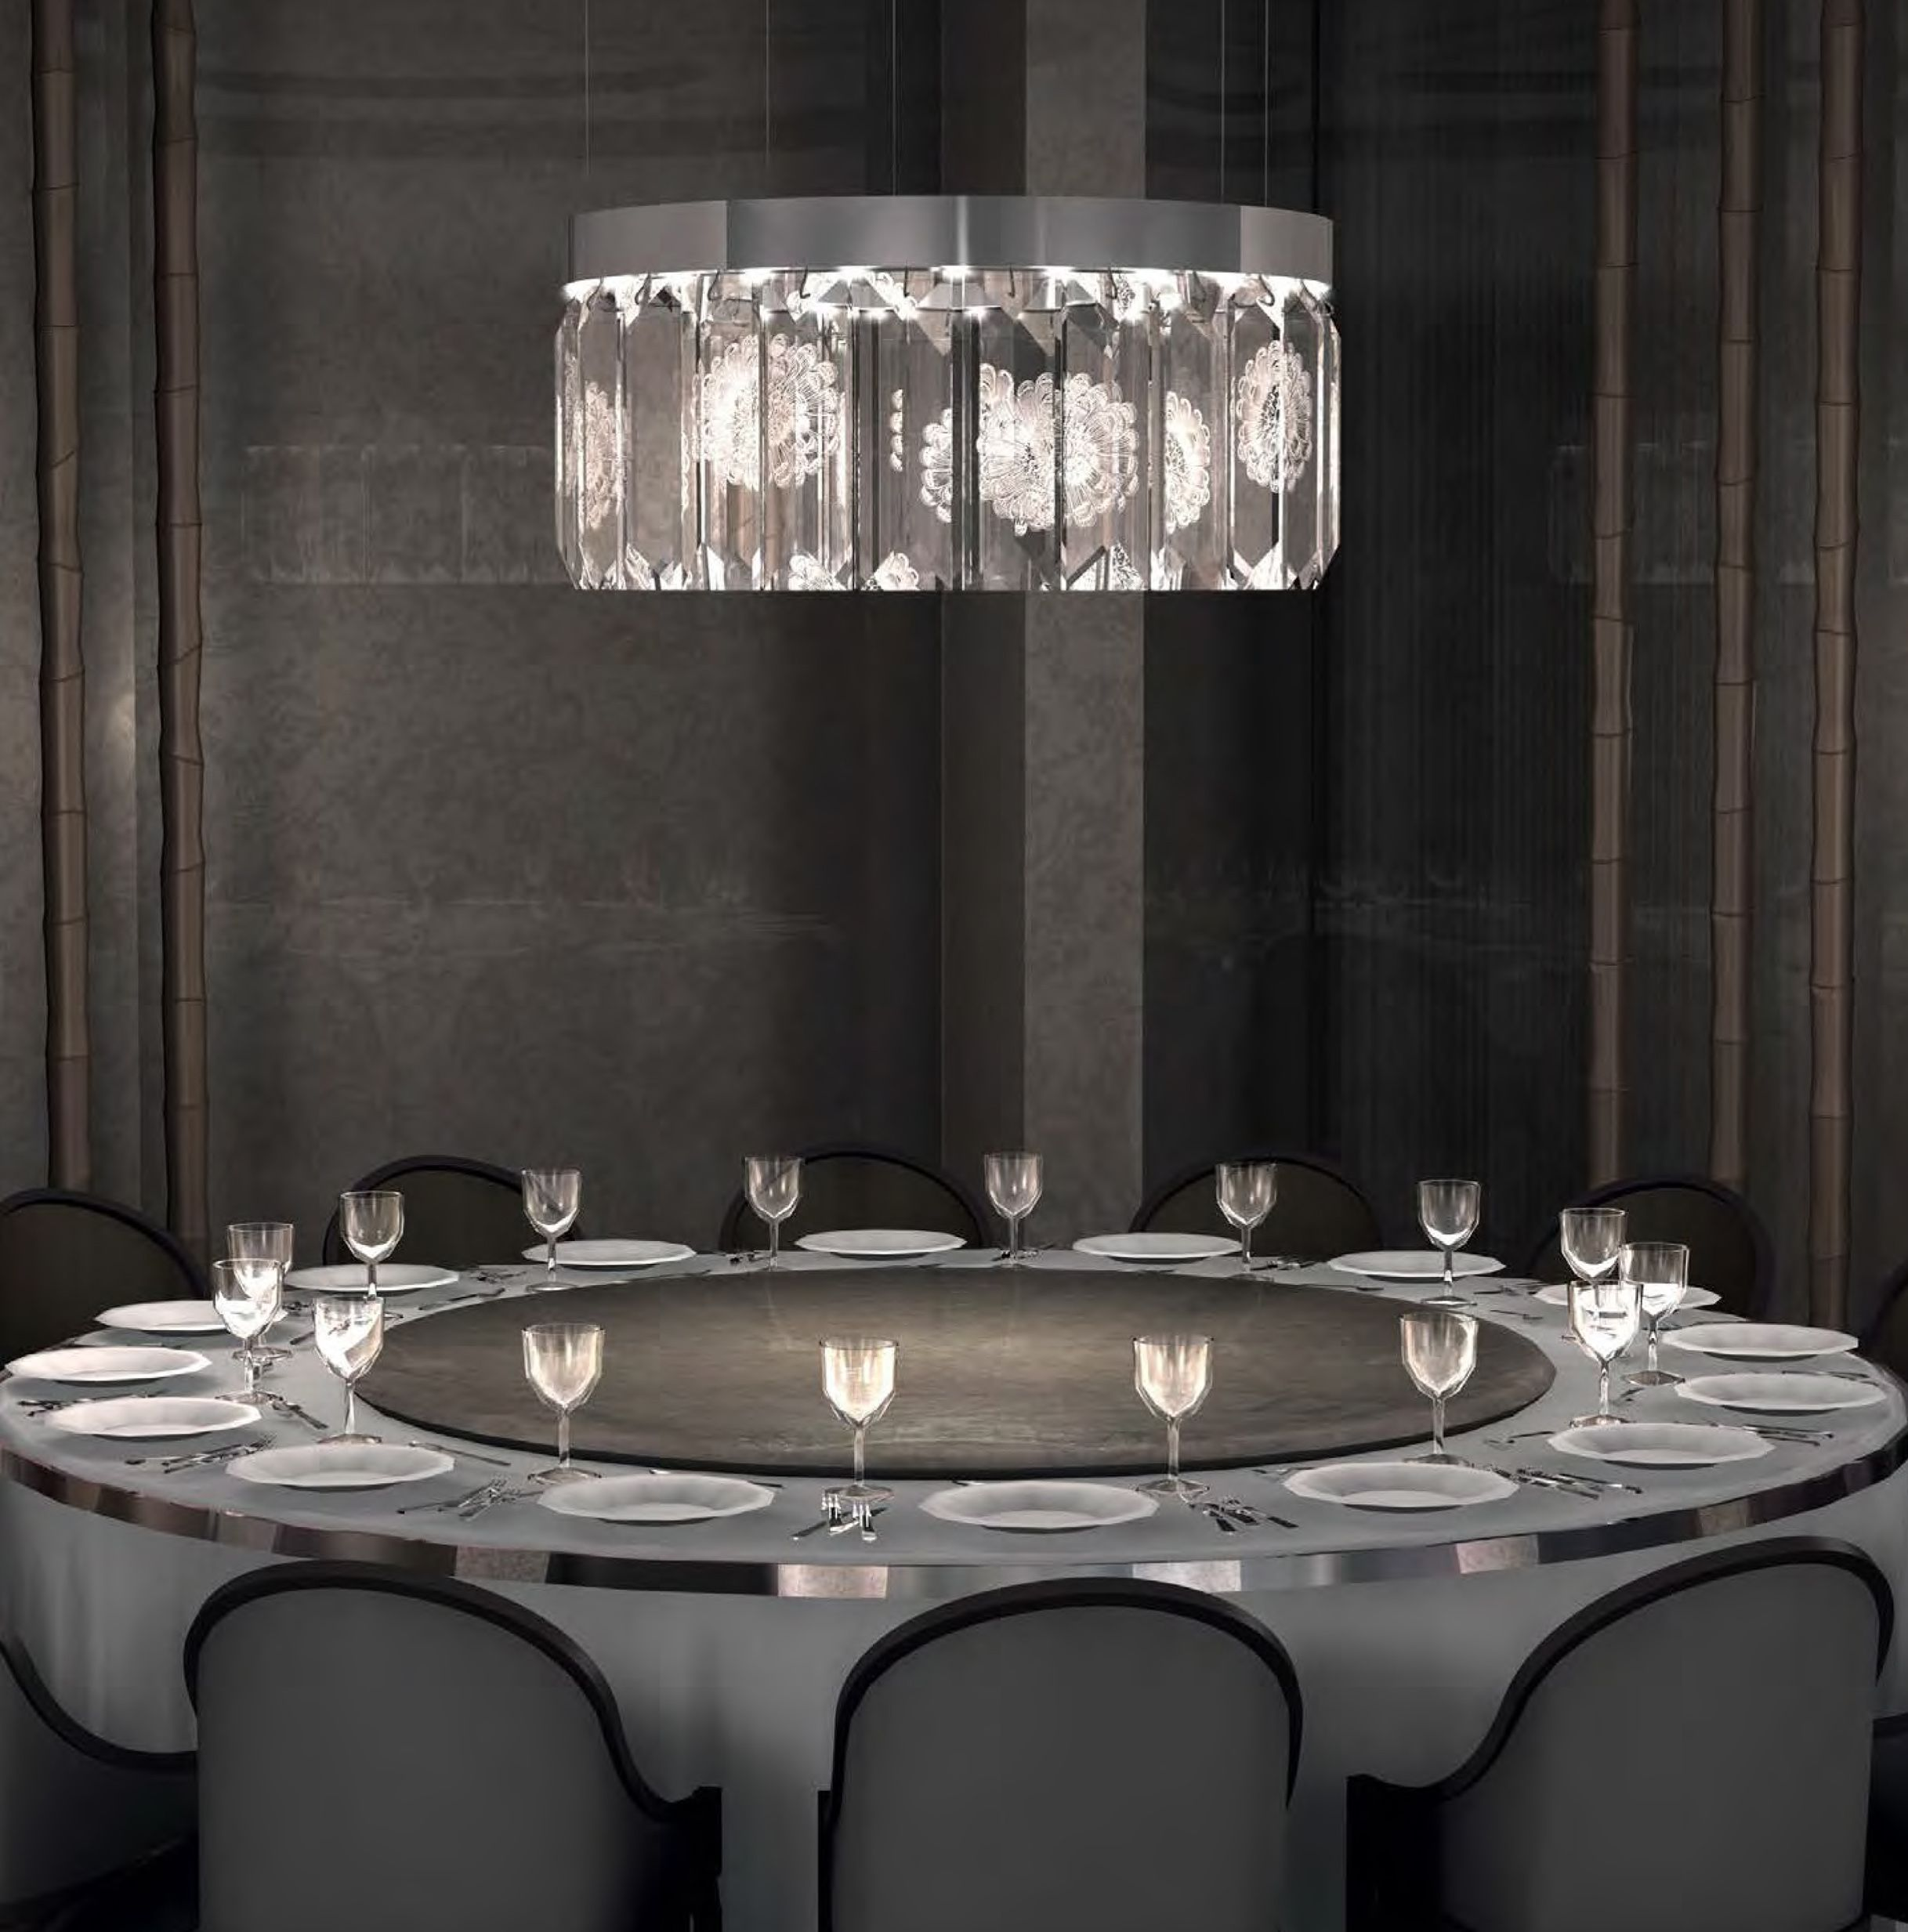 Windfall chandeliers with lalique the serene the serene windfall chandeliers with lalique the serene collection arubaitofo Choice Image